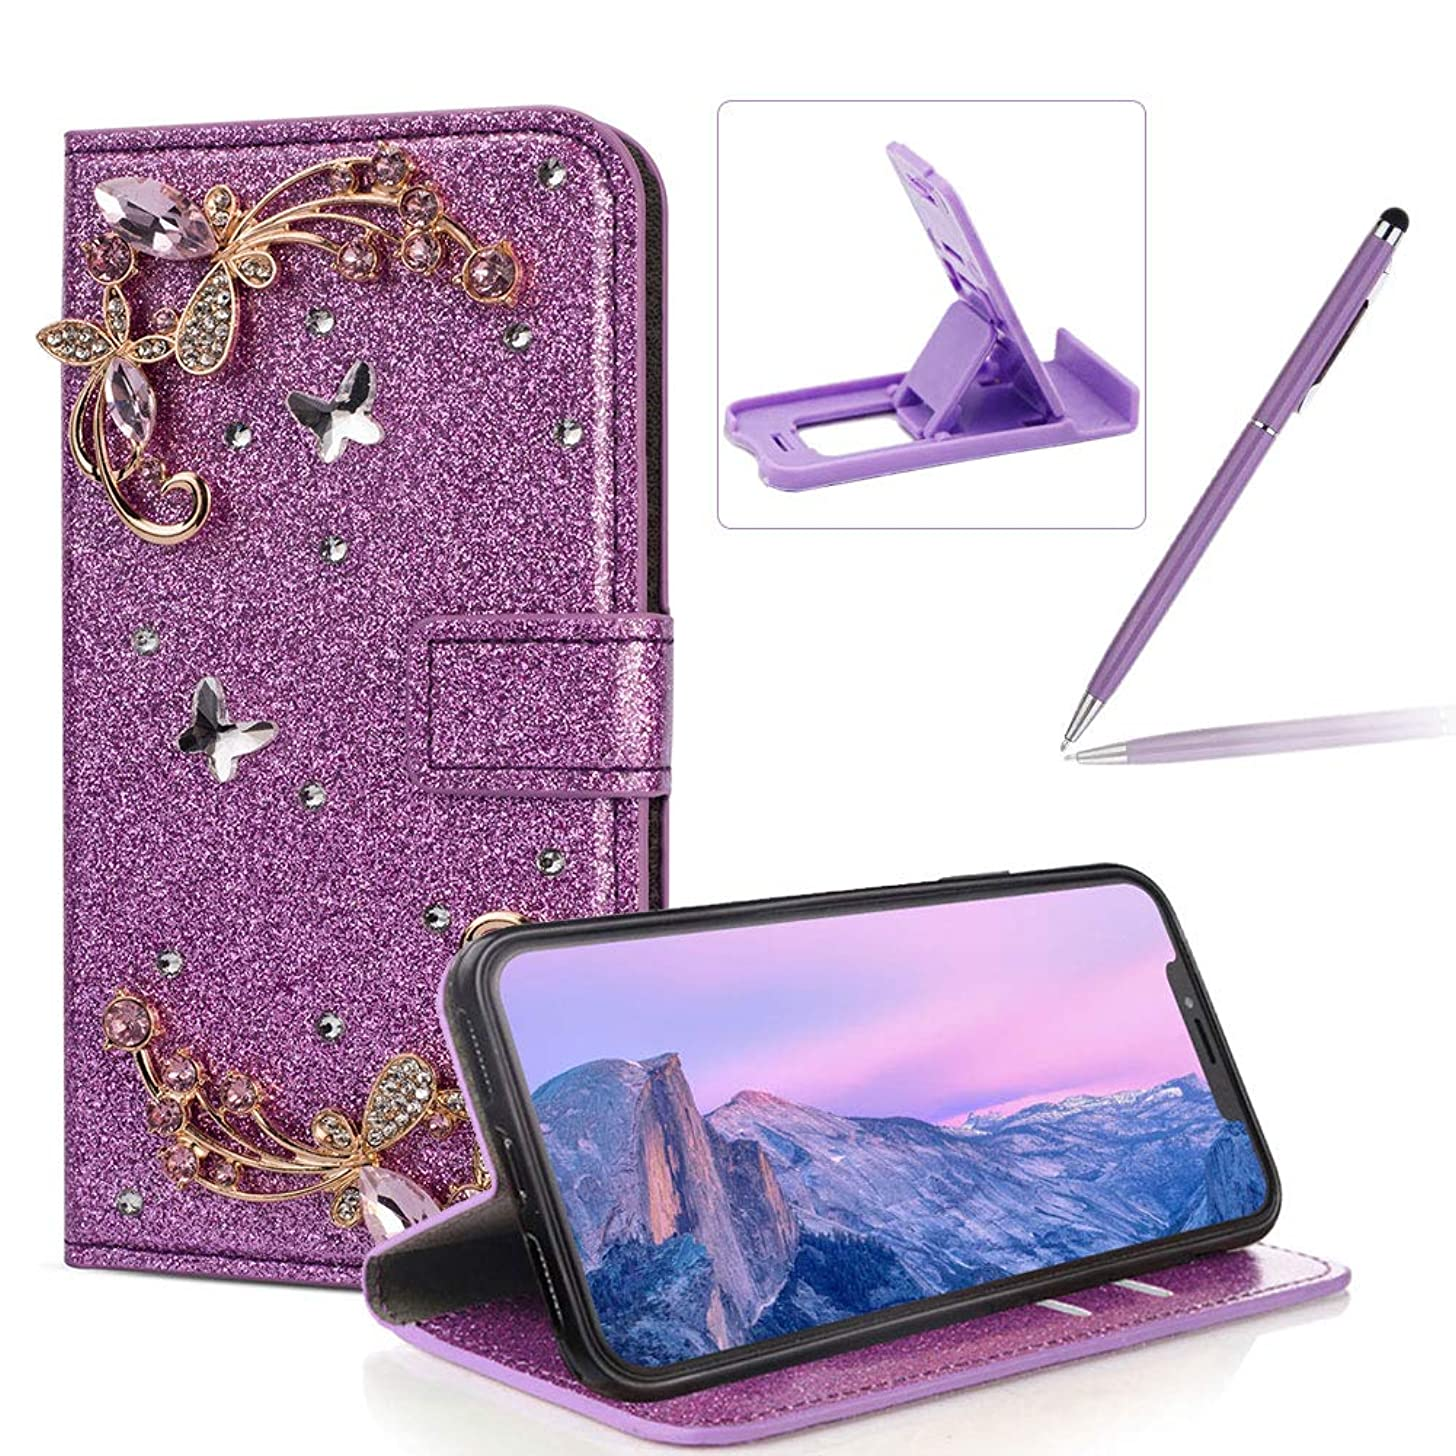 Diamond Wallet Leather Case for iPhone XR,Purple Glitter Flip Cover for iPhone XR,Herzzer Luxury 3D Flower Butterfly Decor Magnetic Stand Case with Inner Soft Rubber Case